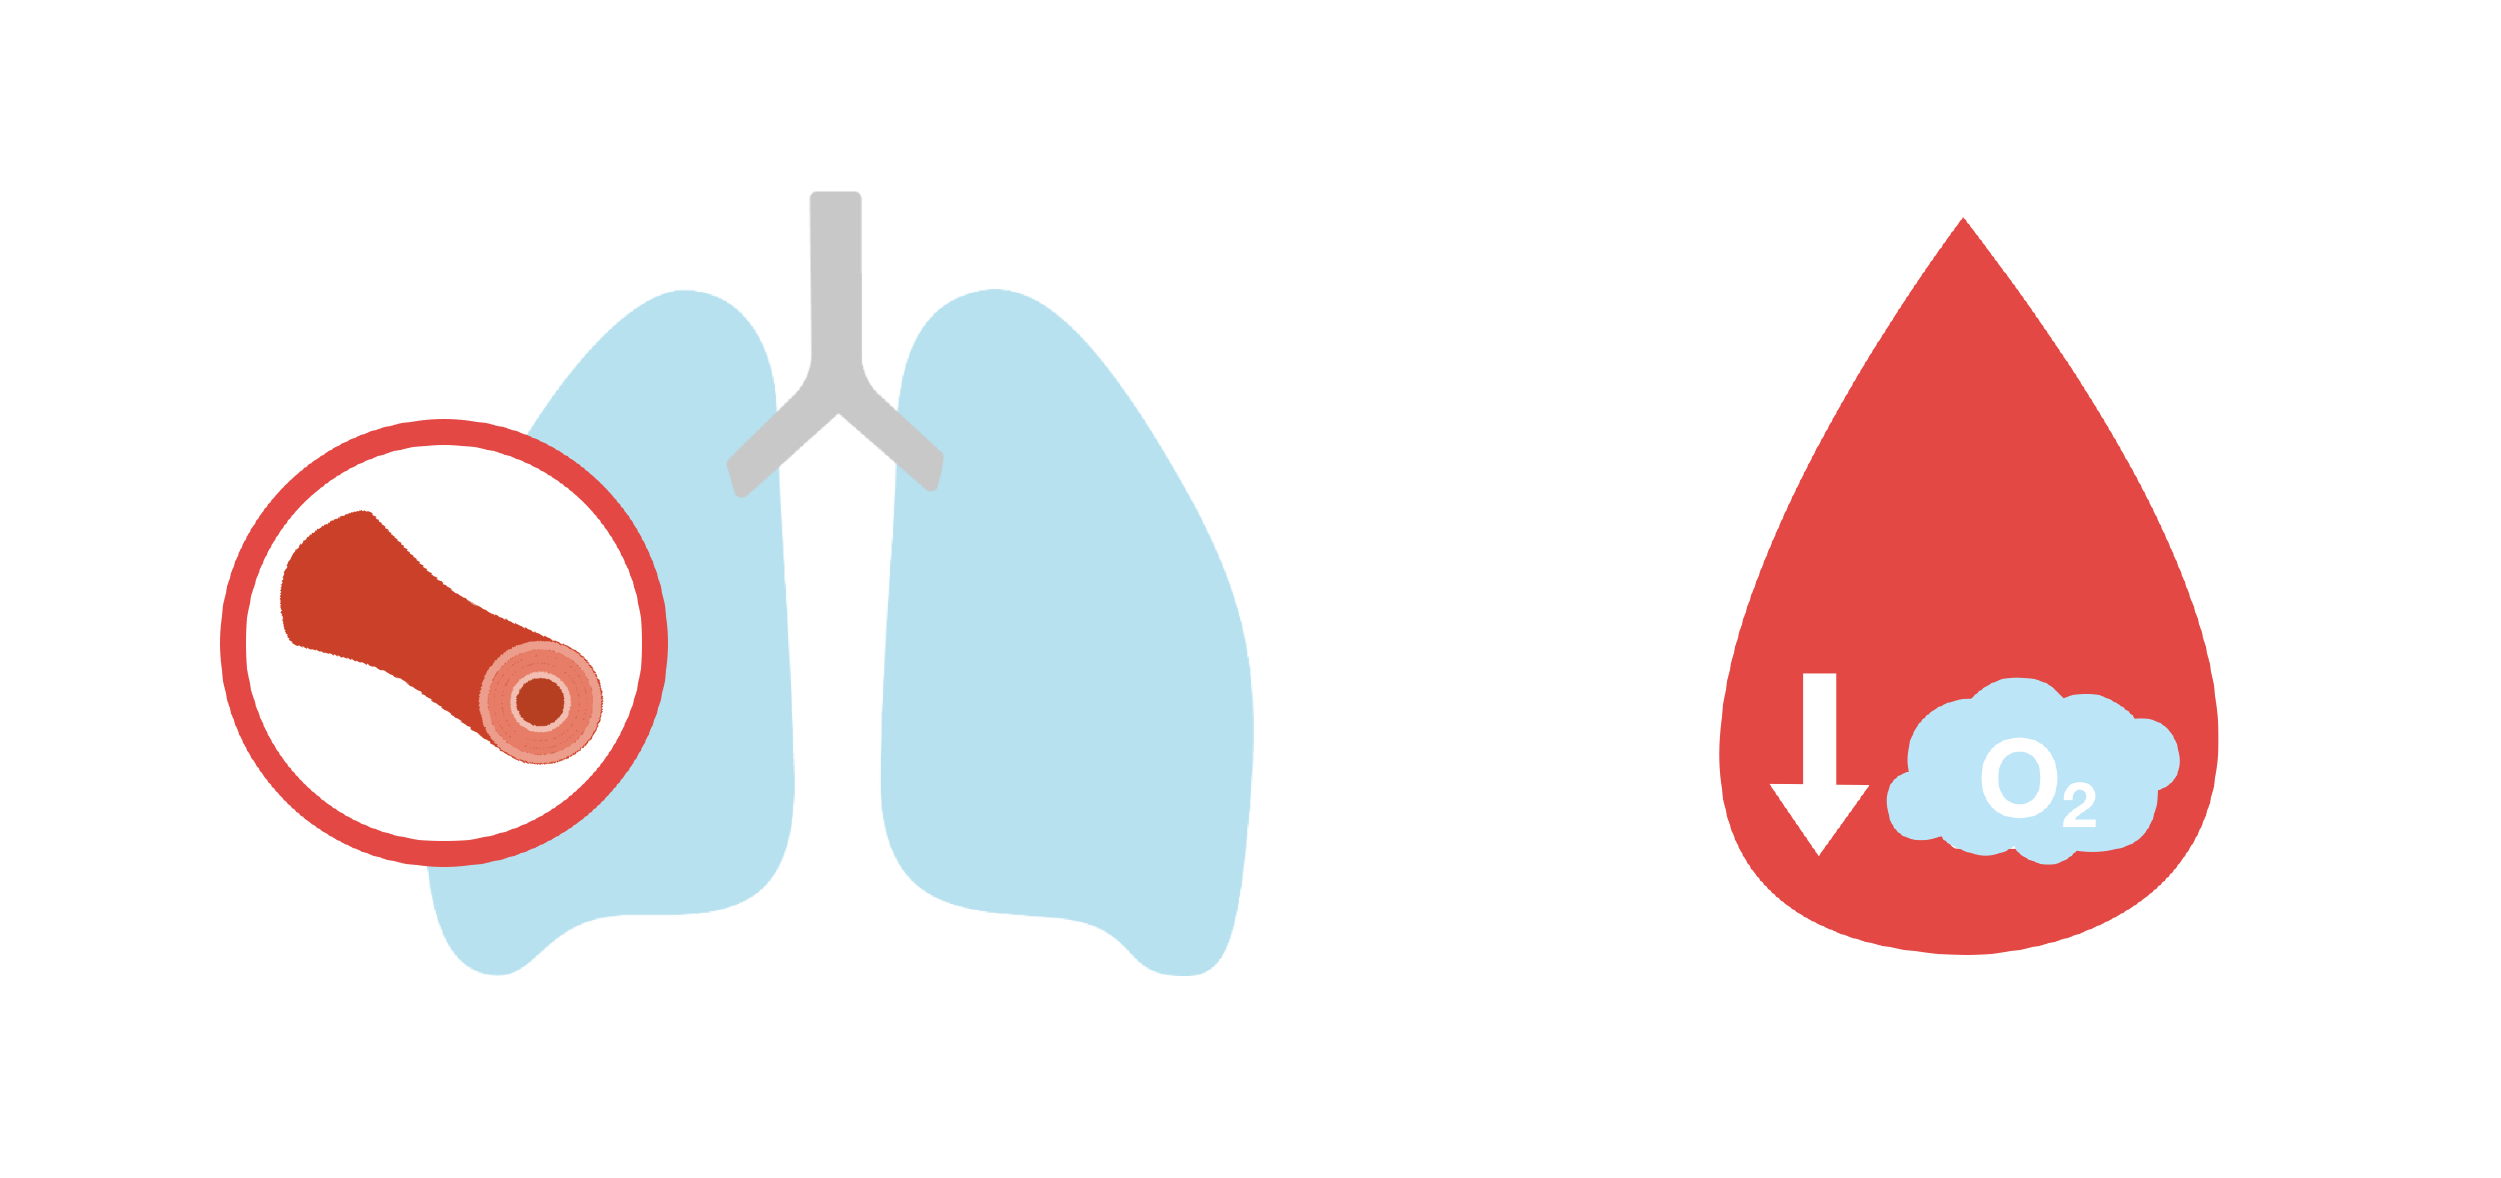 Lungs with constricted blood vessel and blood droplet with low oxygen. Illustration.